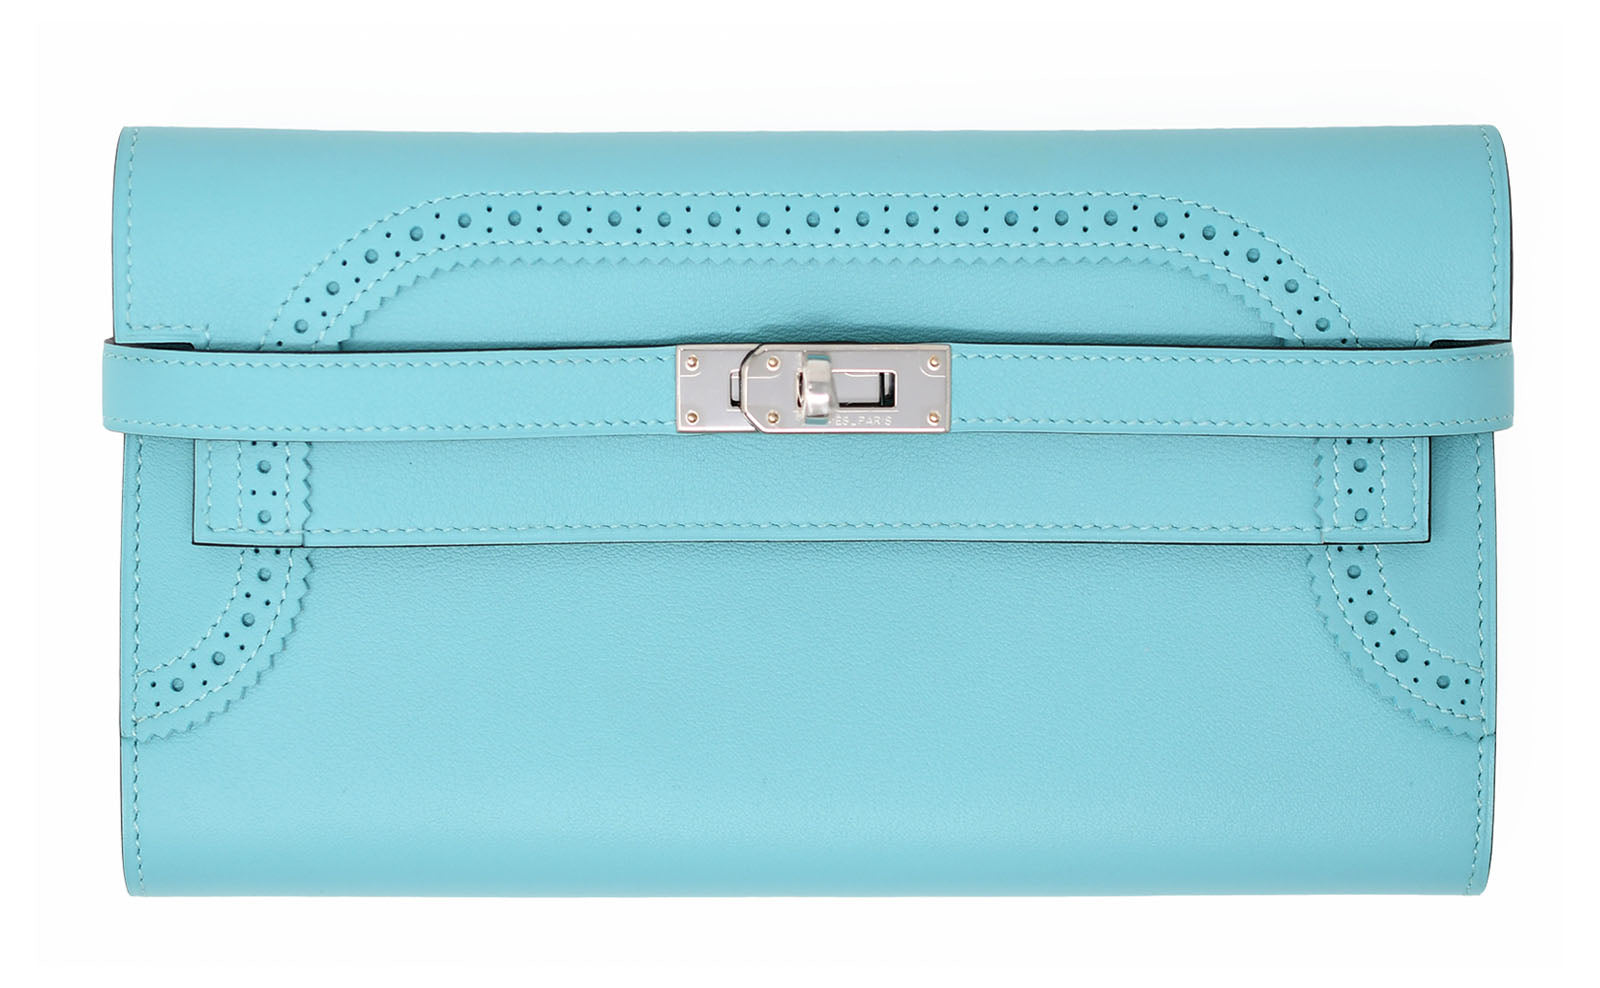 Hermes Ghillies Kelly Wallet in Blue Atoll with Paladium